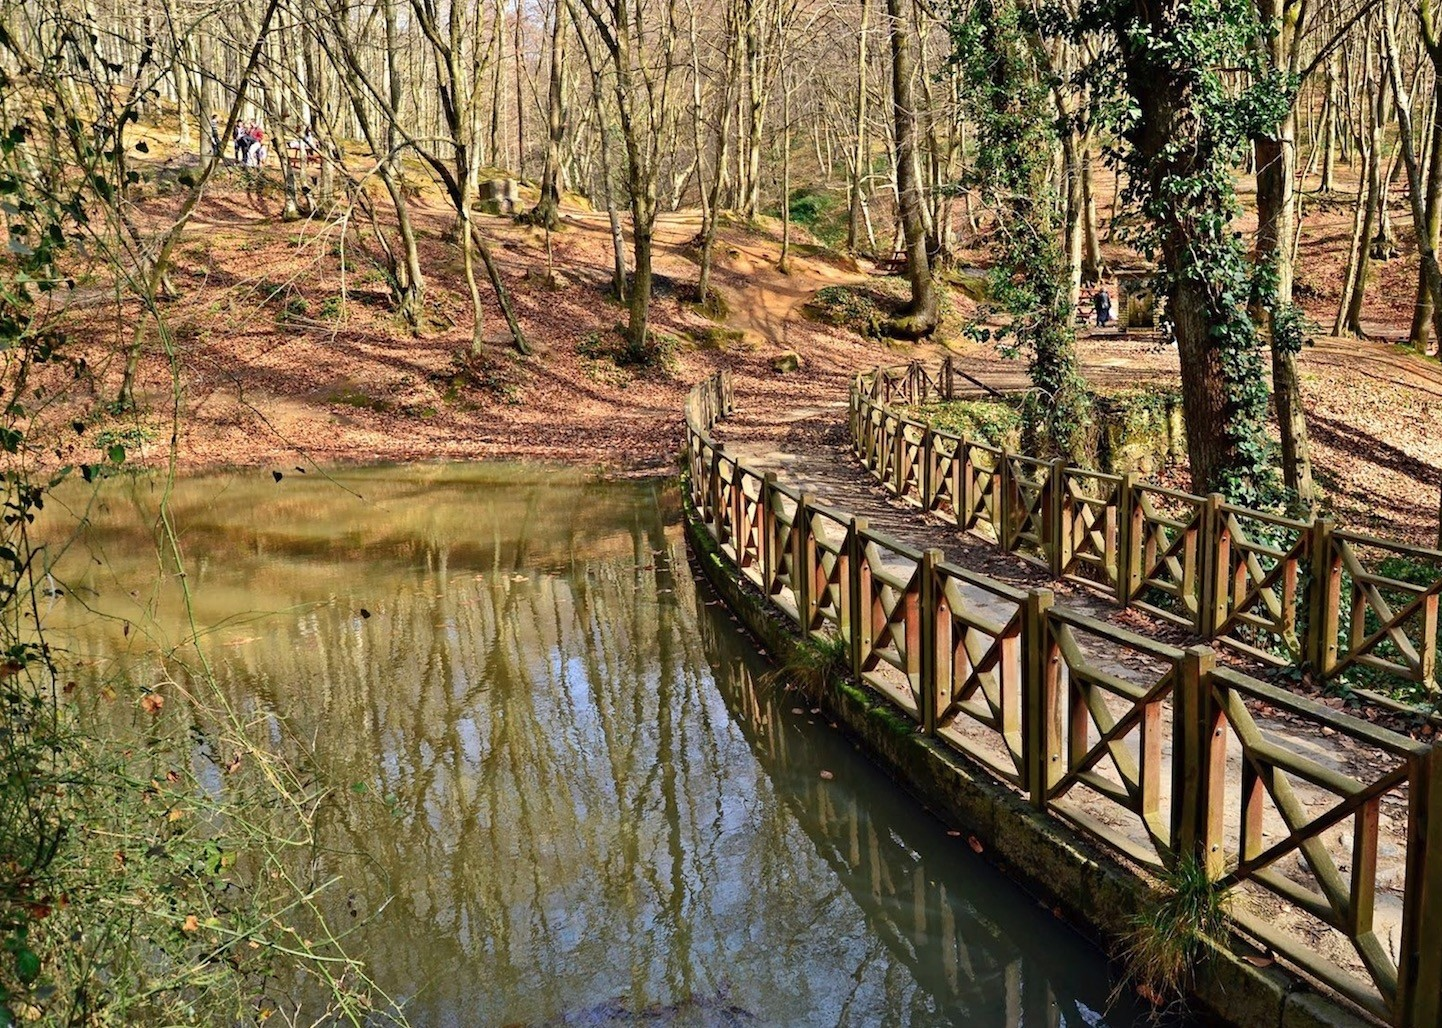 While walking in the Belgrad forest which was an important water collection center in the history, the streams will add to your joy.